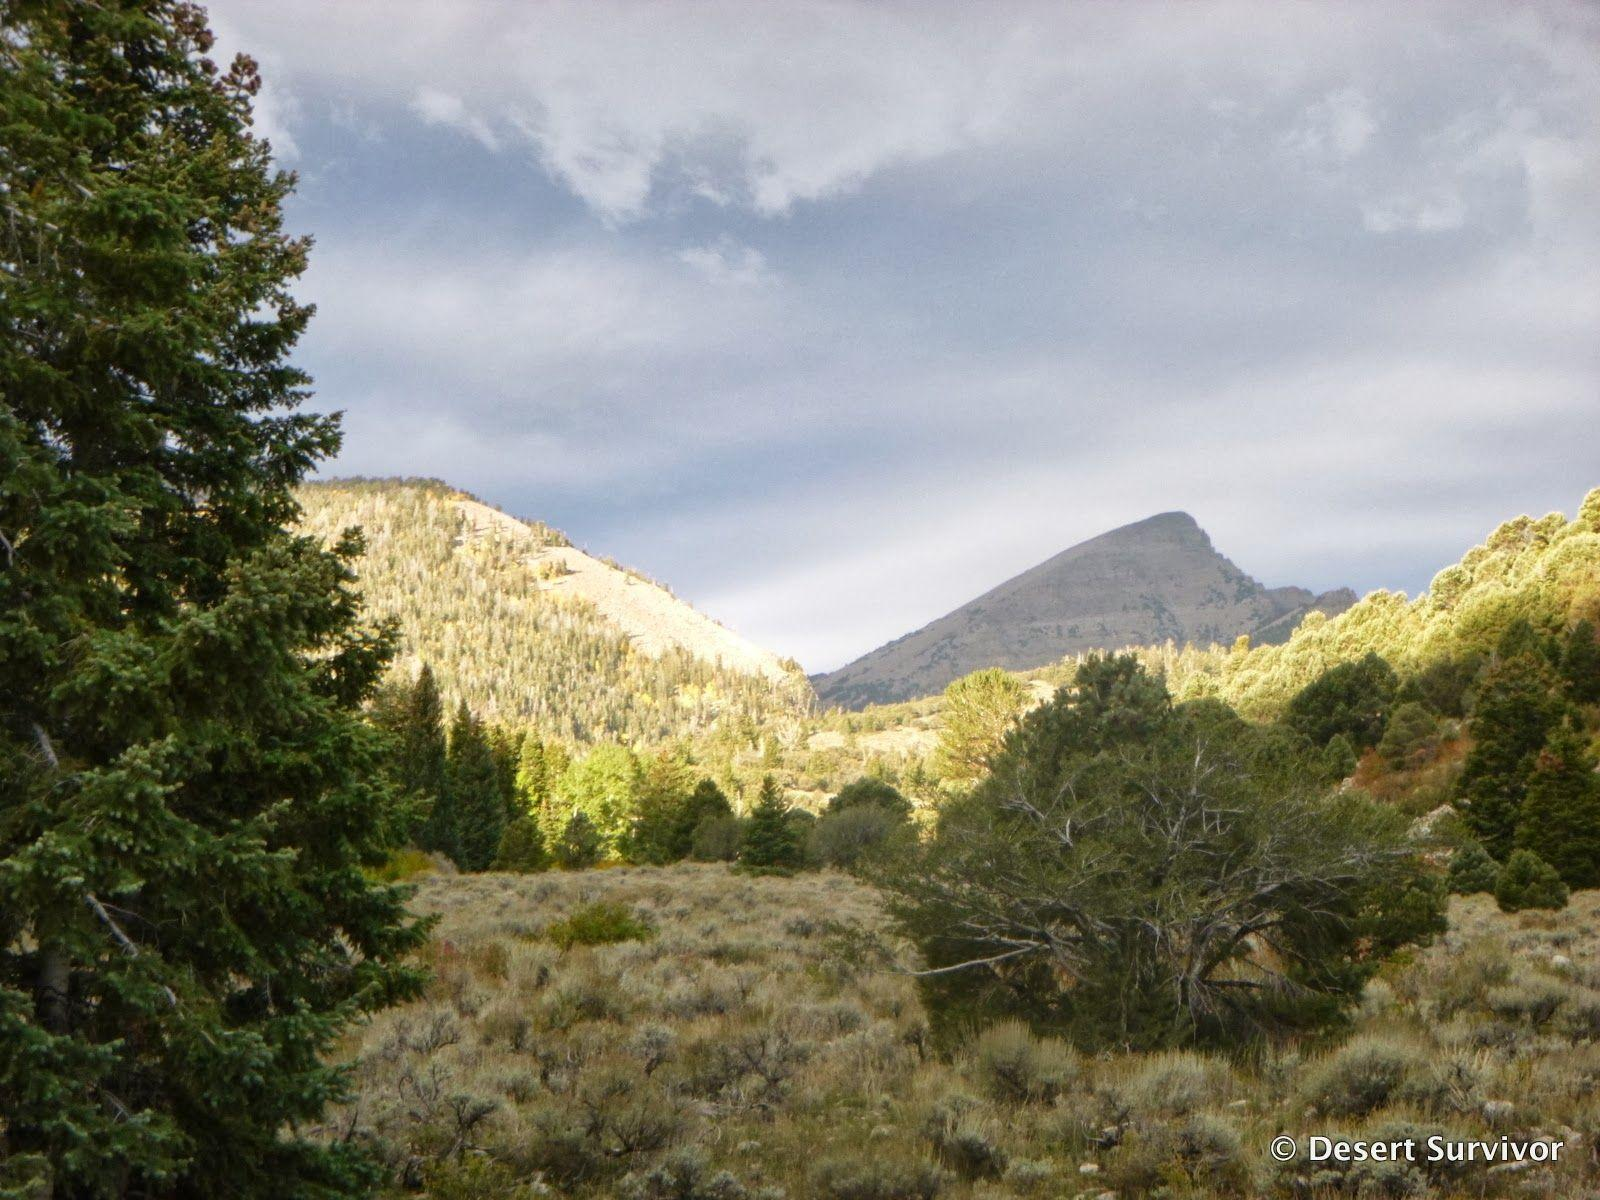 Desert Survivor: Hike to Baker Lake in Great Basin National Park